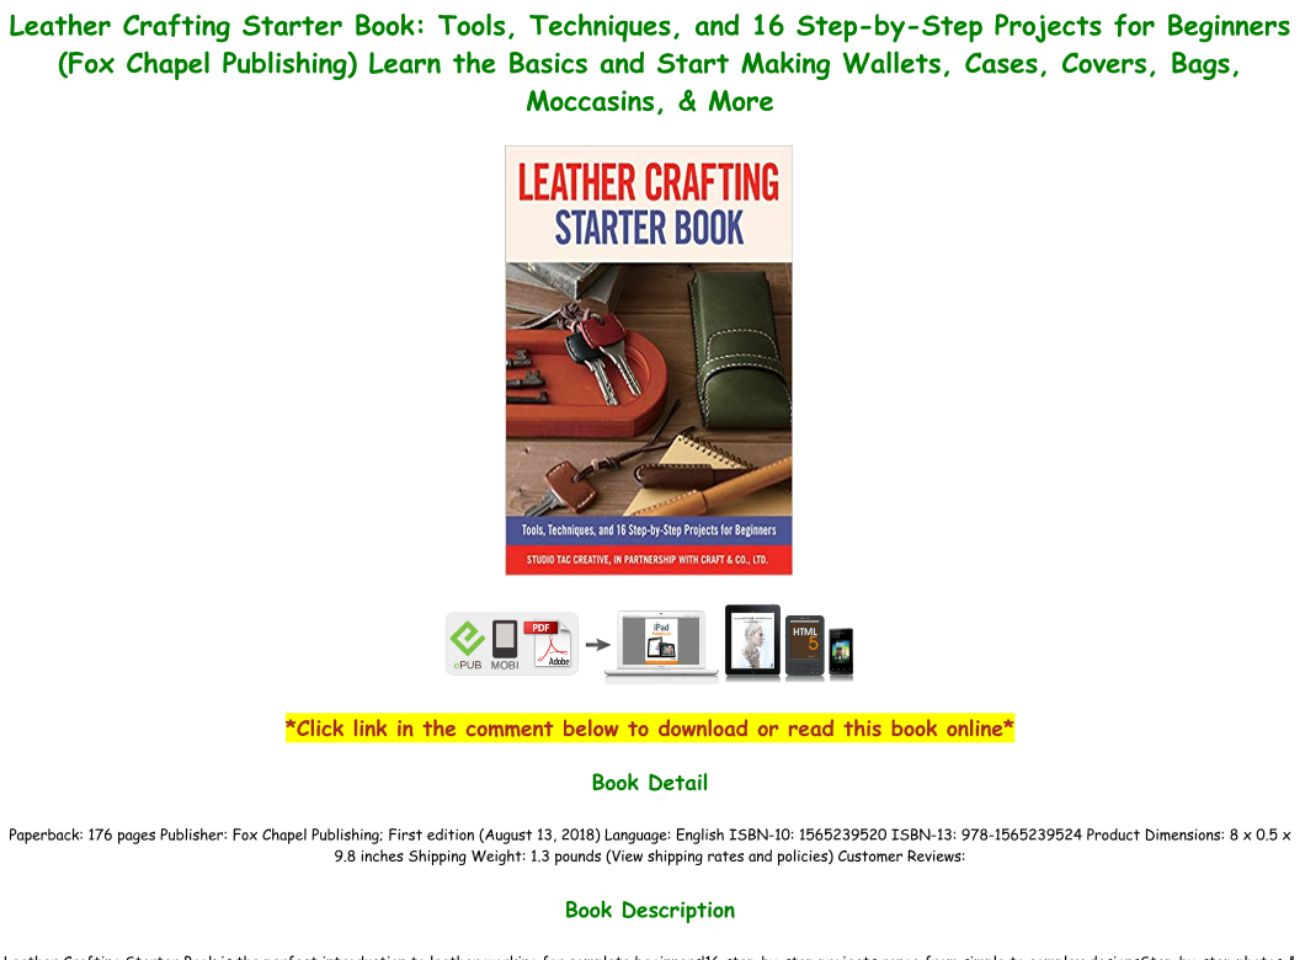 Read Book Pdf Leather Crafting Starter Book Tools Techniques And 16 Step By Step Projects For B Text Images Music Video Glogster Edu Interactive Multimedia Posters